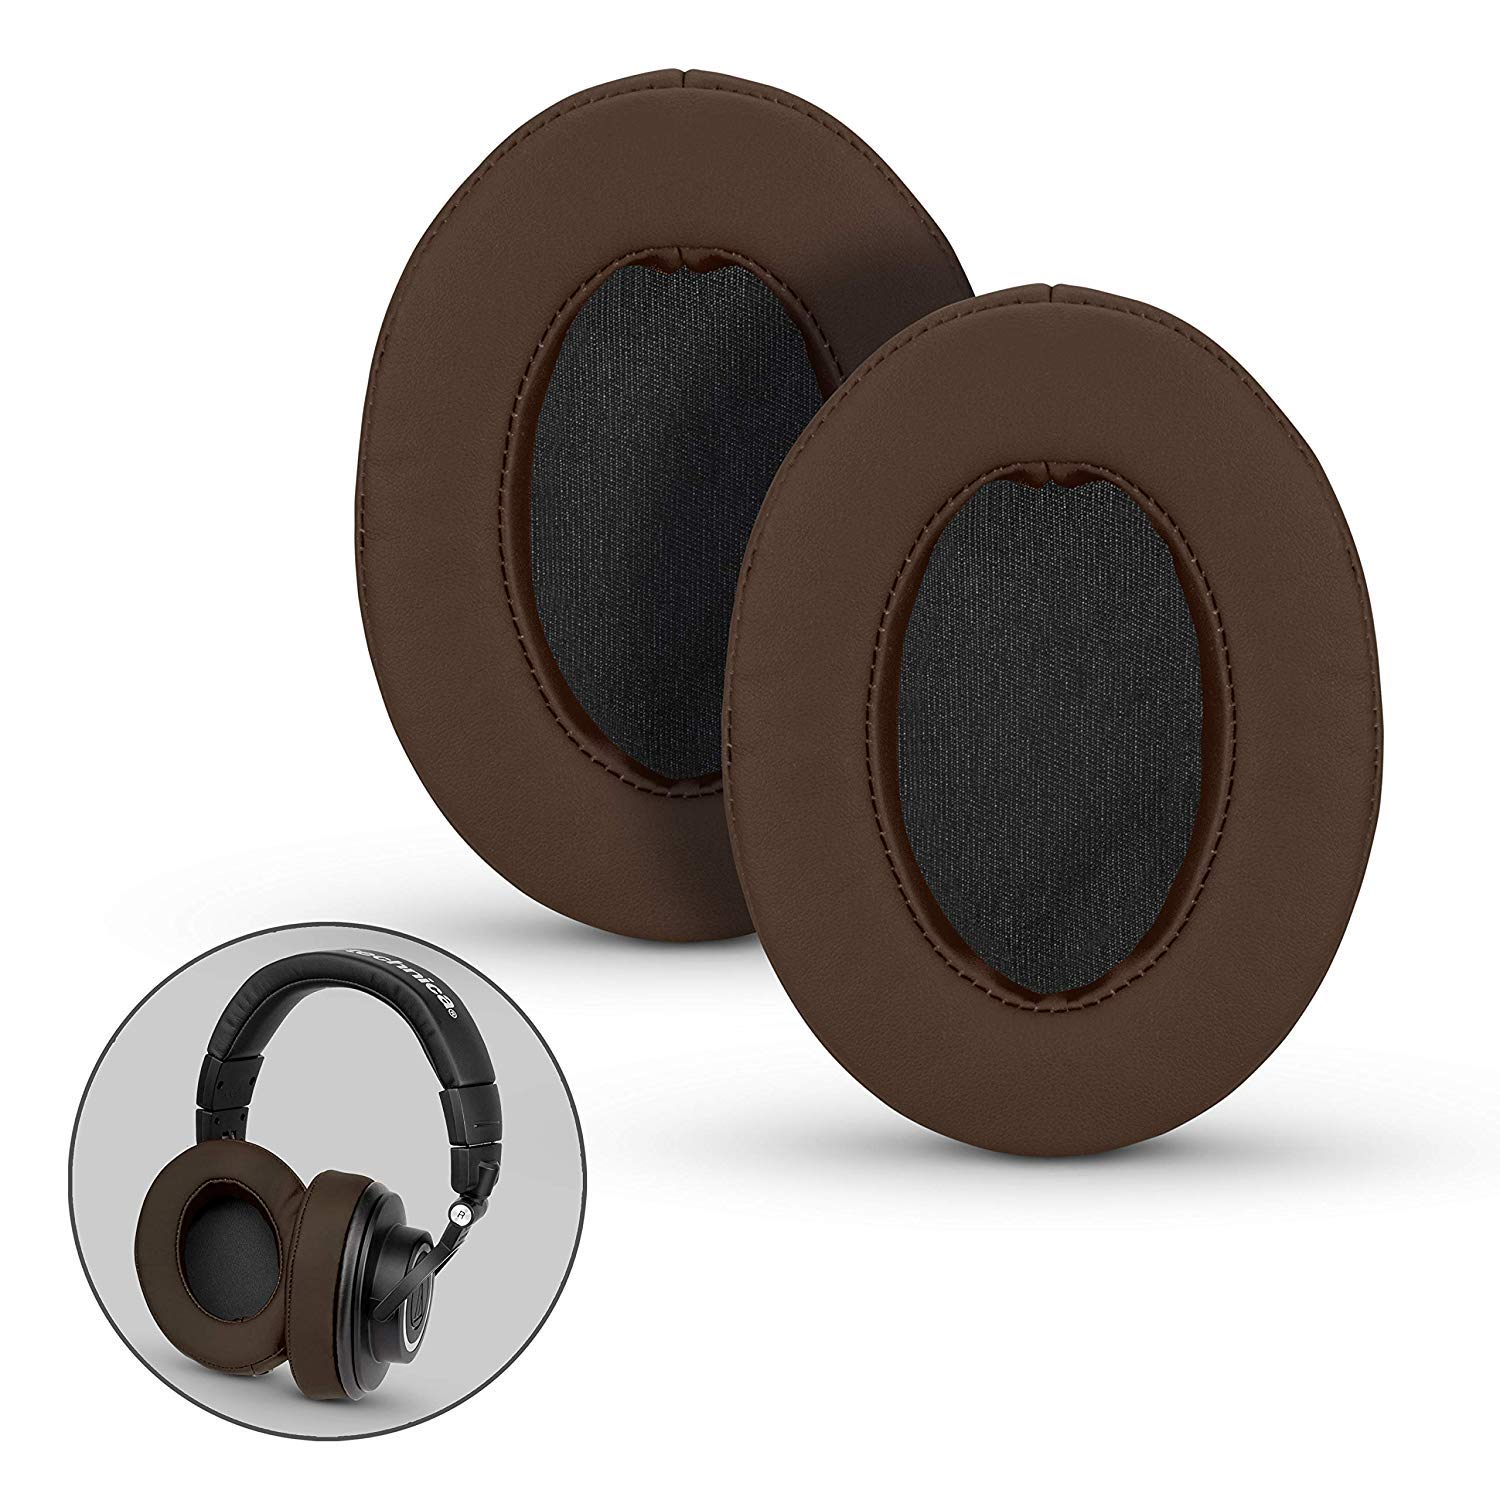 Brainwavz Ear Pads for ATH M50X, M50XBT, M40X, M30X, HyperX, SHURE, Turtle Beach, AKG, ATH, Philips, JBL, Fostex Replacement Memory Foam Earpads & Fits Many Headphones (See List), Brown Oval